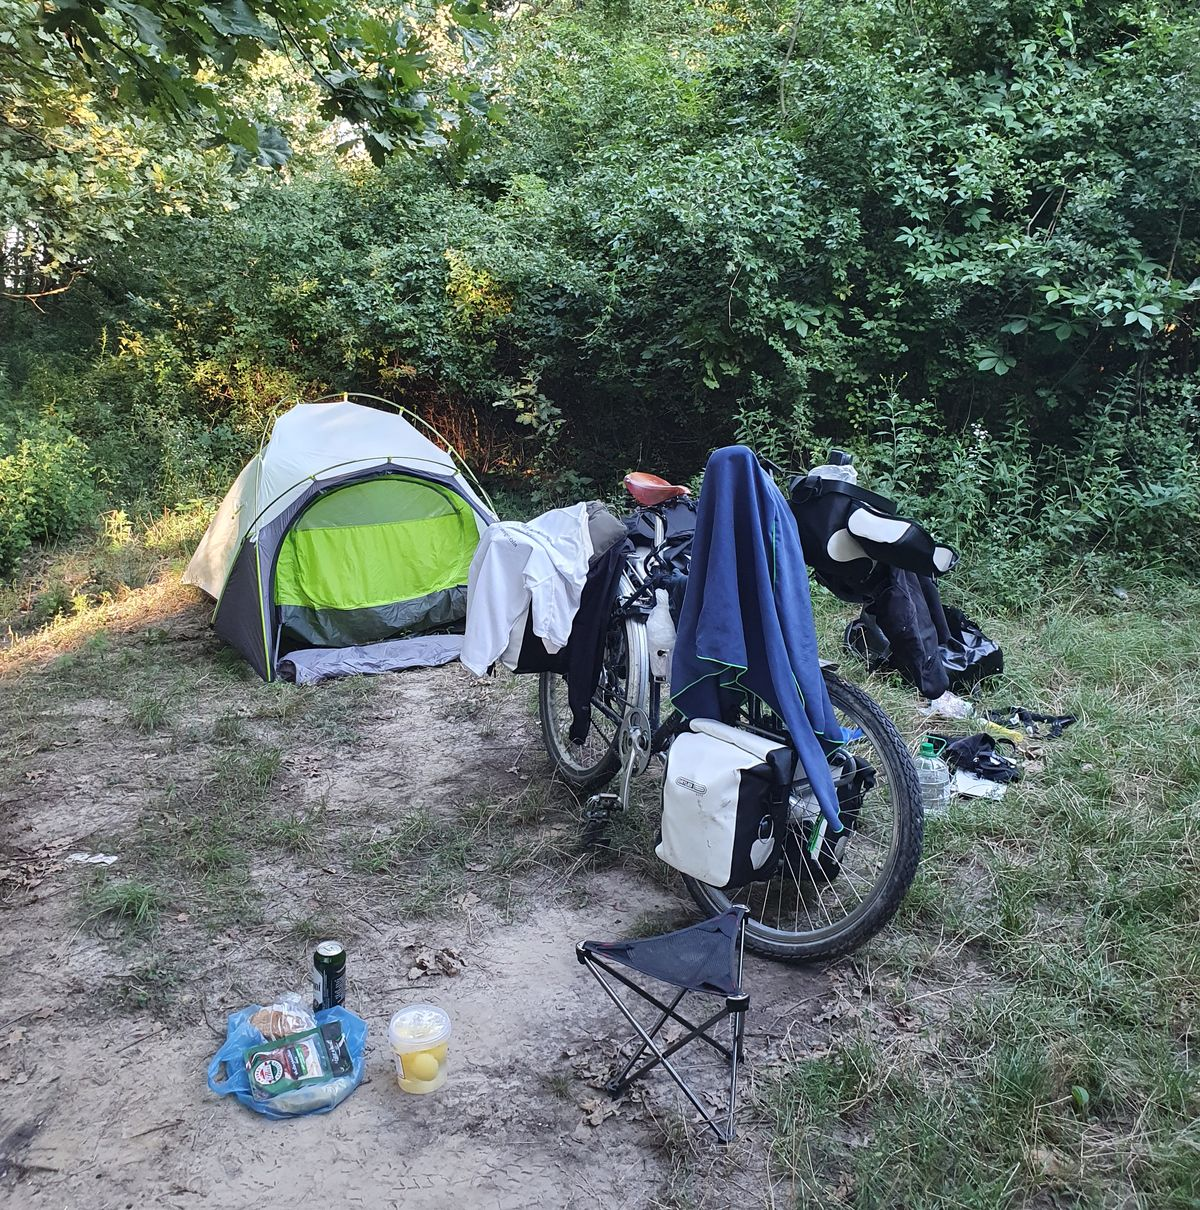 Campingstelle bei Lad